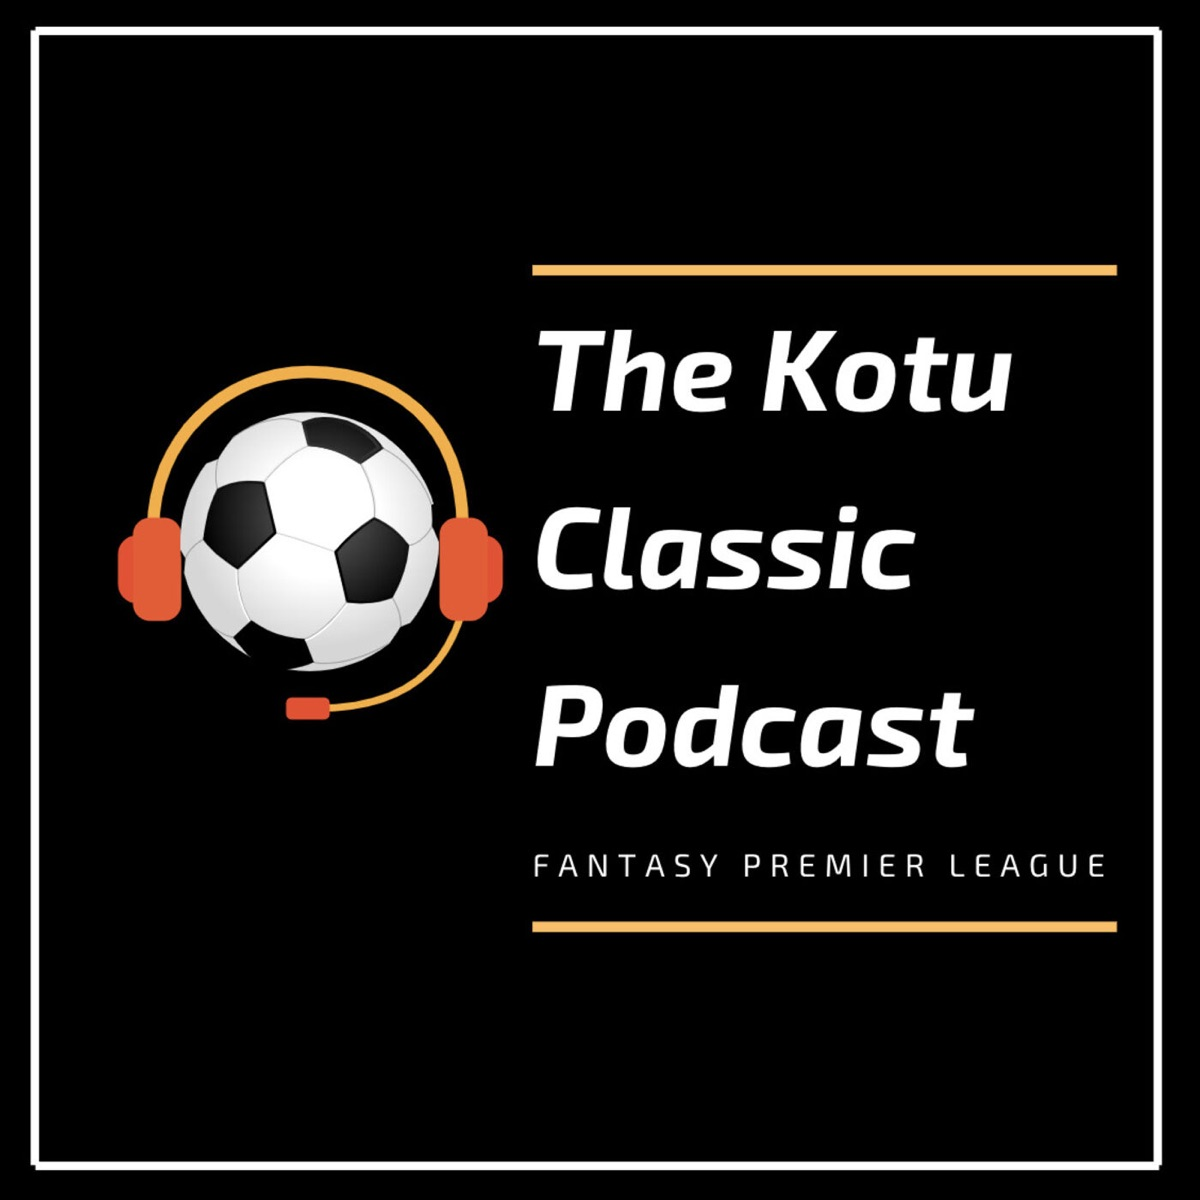 The Kotu Classic FPL Podcast